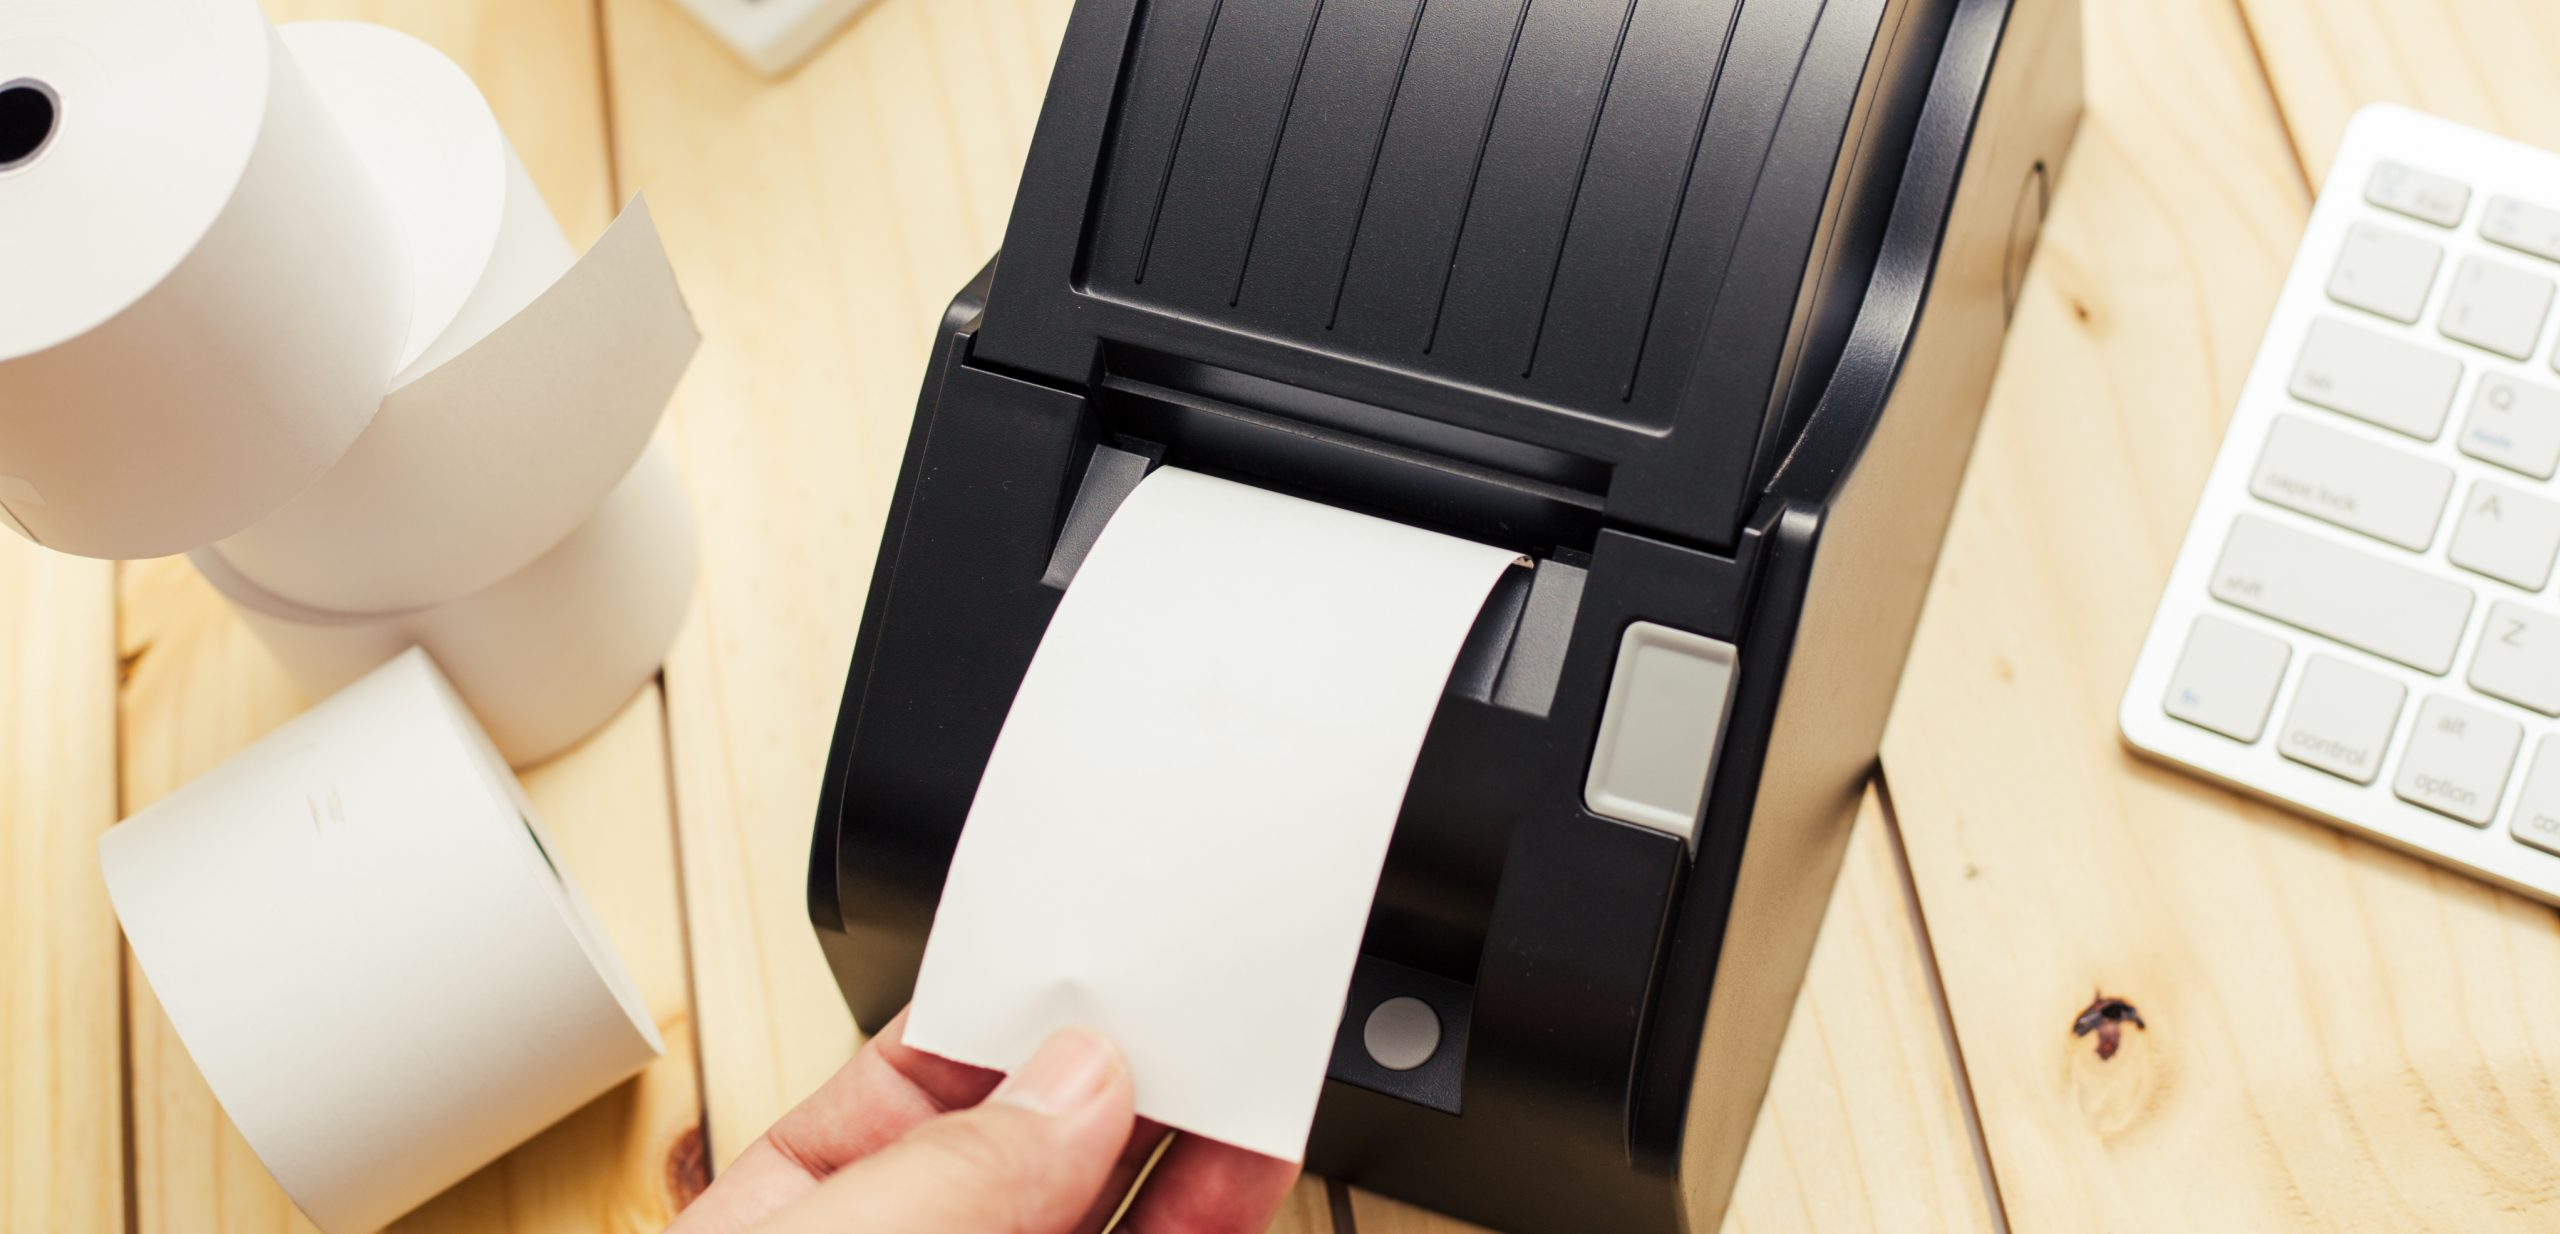 Best Thermal Printer 2020: Shopping Guide & Review